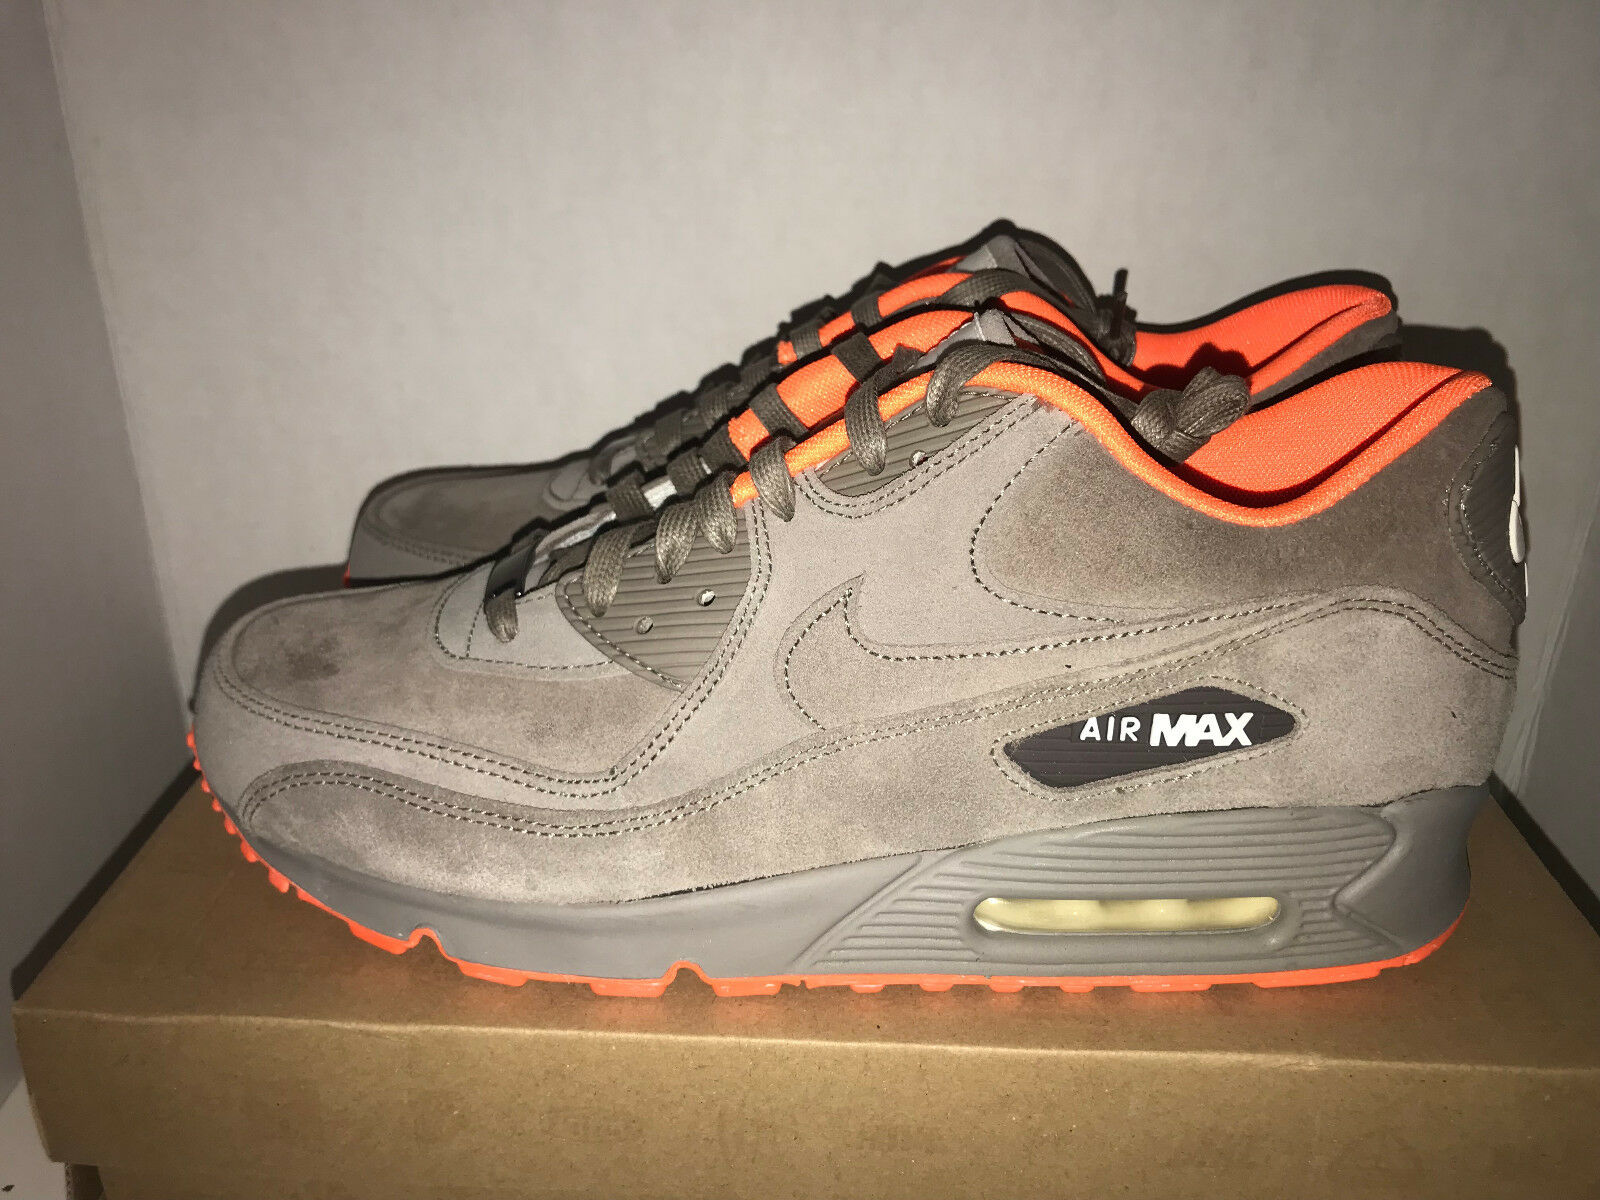 Nike Air Max 90 Milano QS Size 11 DS 586848 221